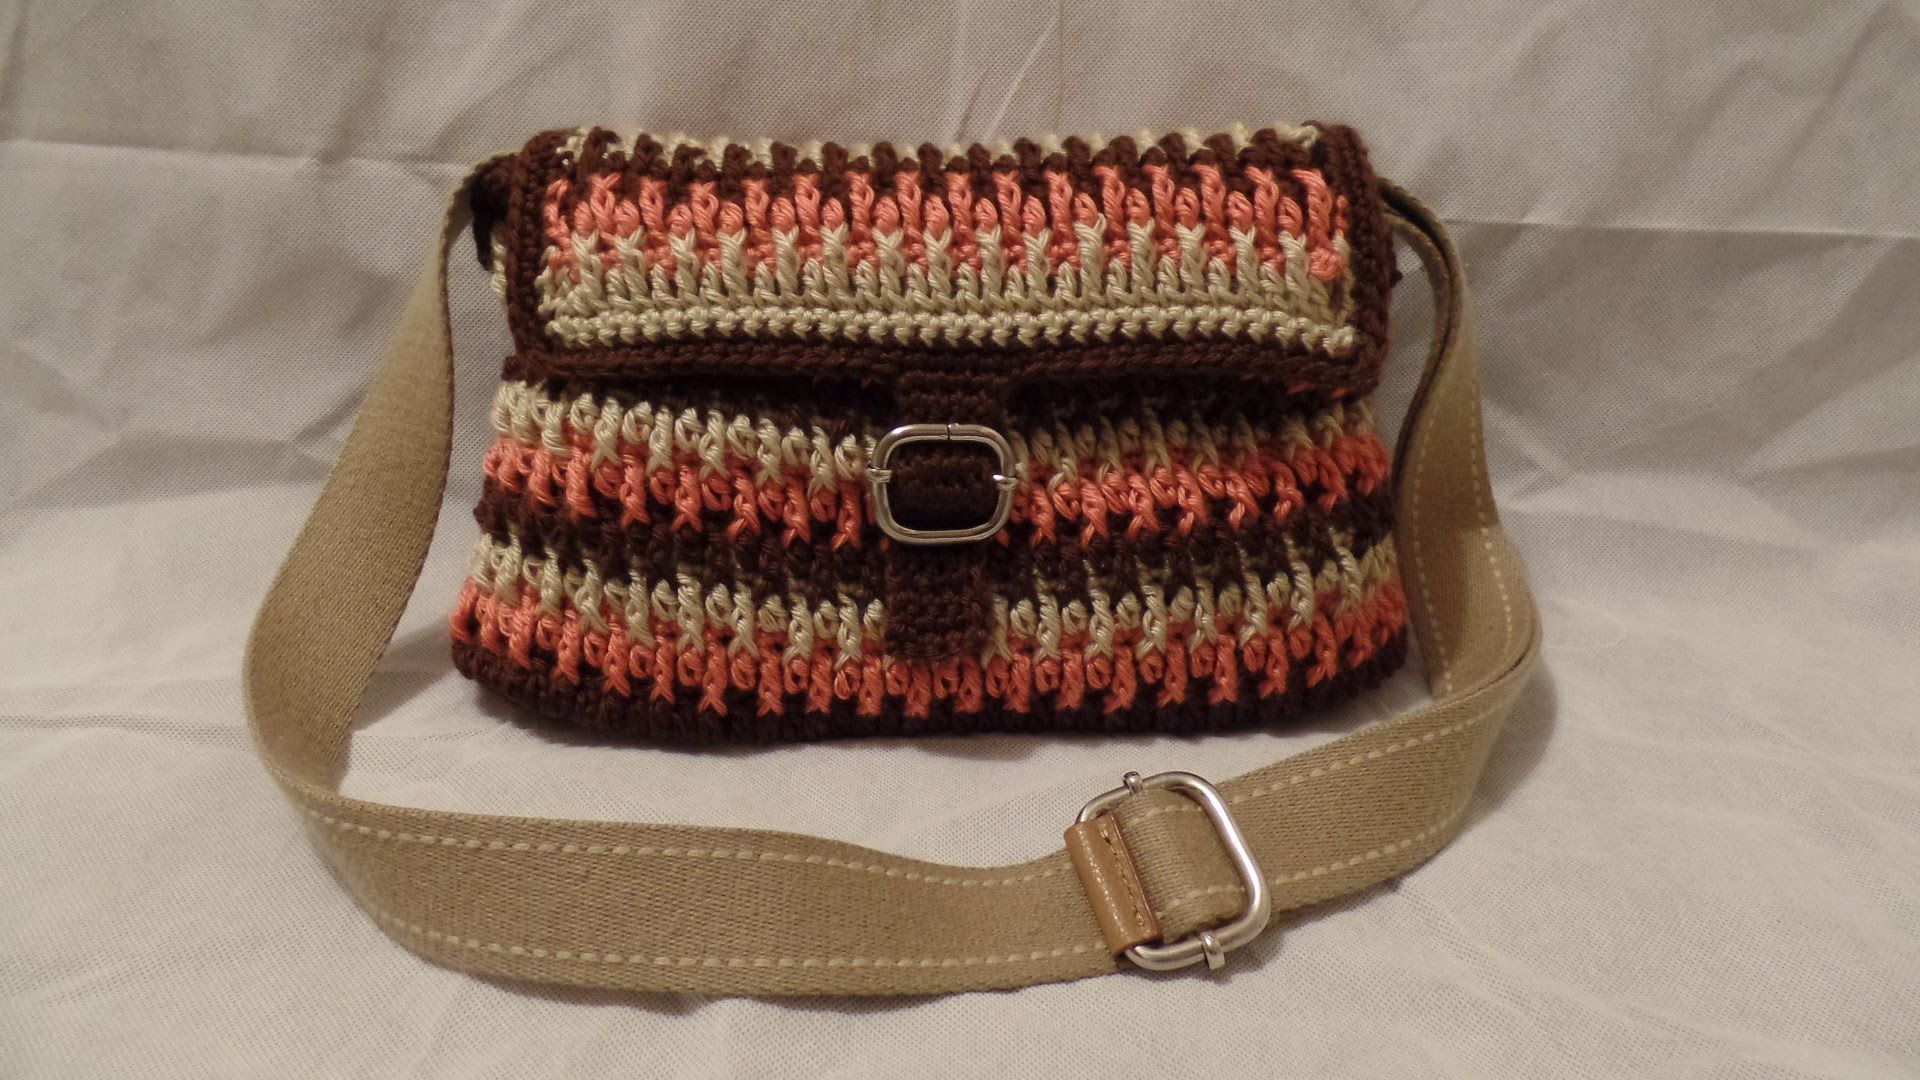 CROCHET How to #Crochet Handbag Purse #TUTORIAL #195